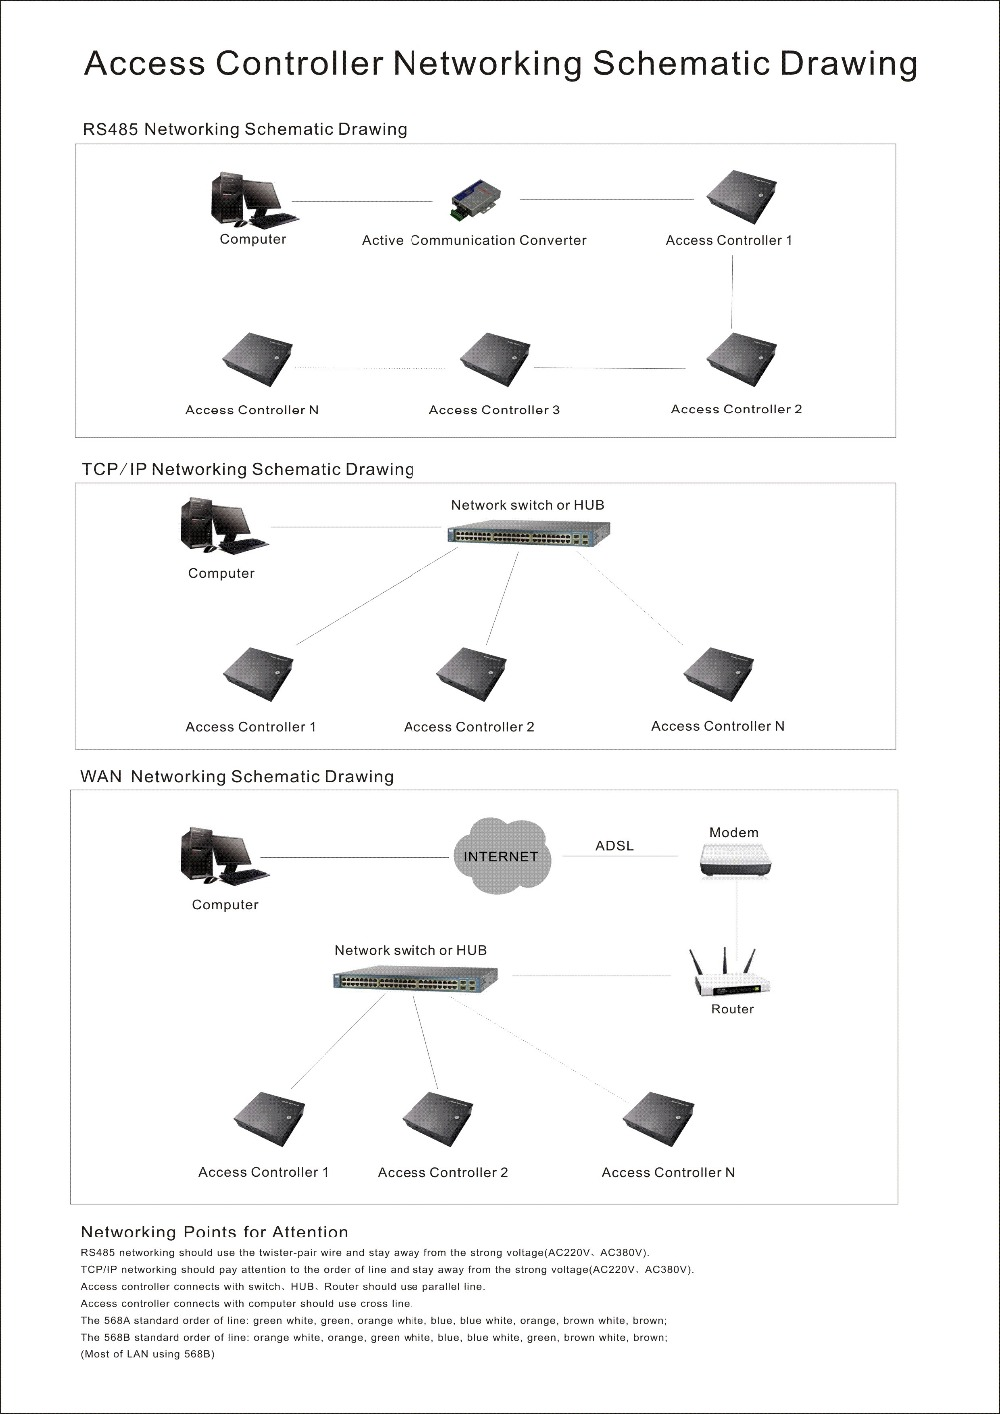 Networking Schematic Drawing